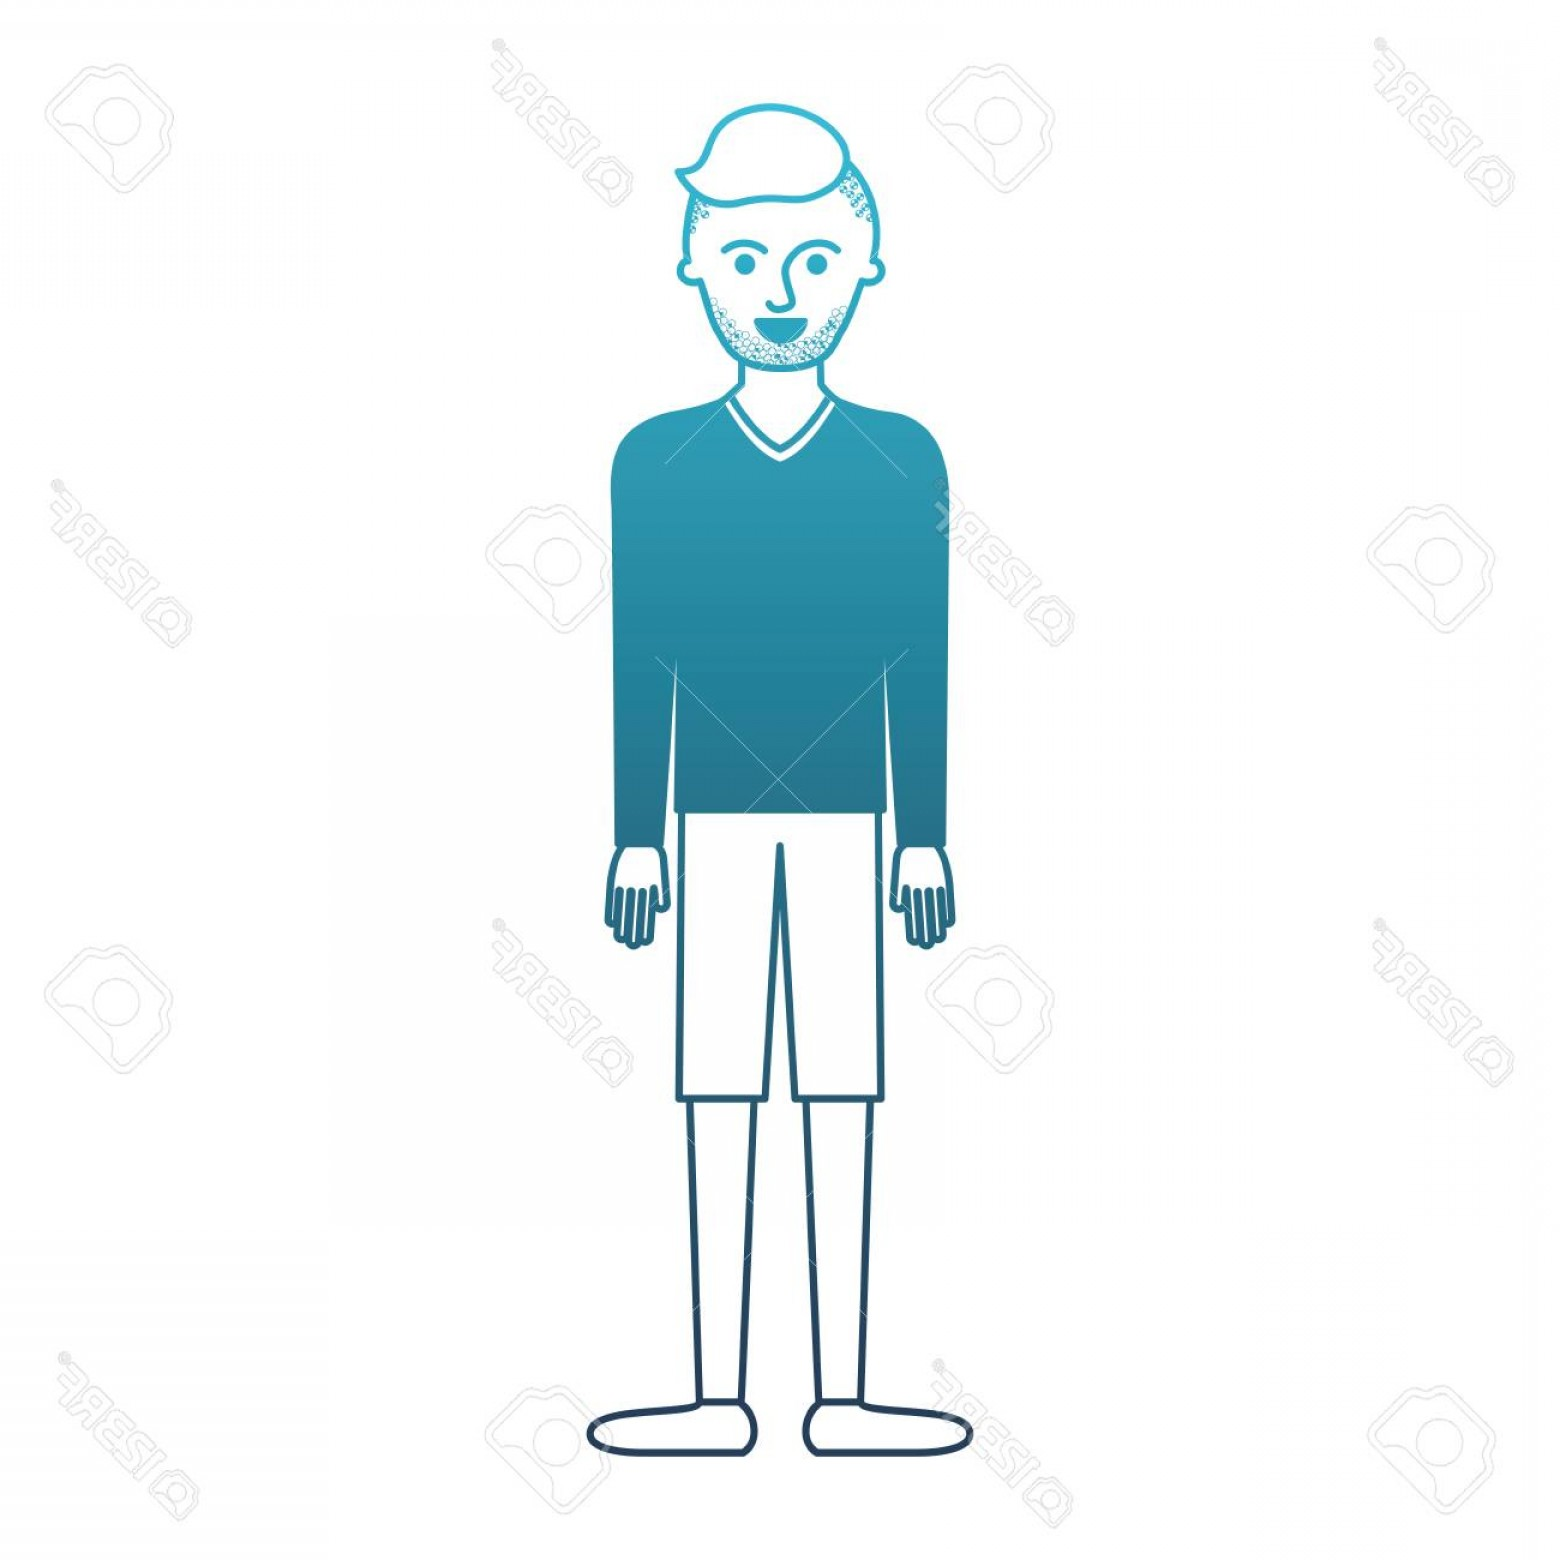 Vector Male Fade Hair: Photostock Vector Man Full Body With T Shirt Long Sleeve And Short Pants And Shoes With High Fade Haircut And Stubble